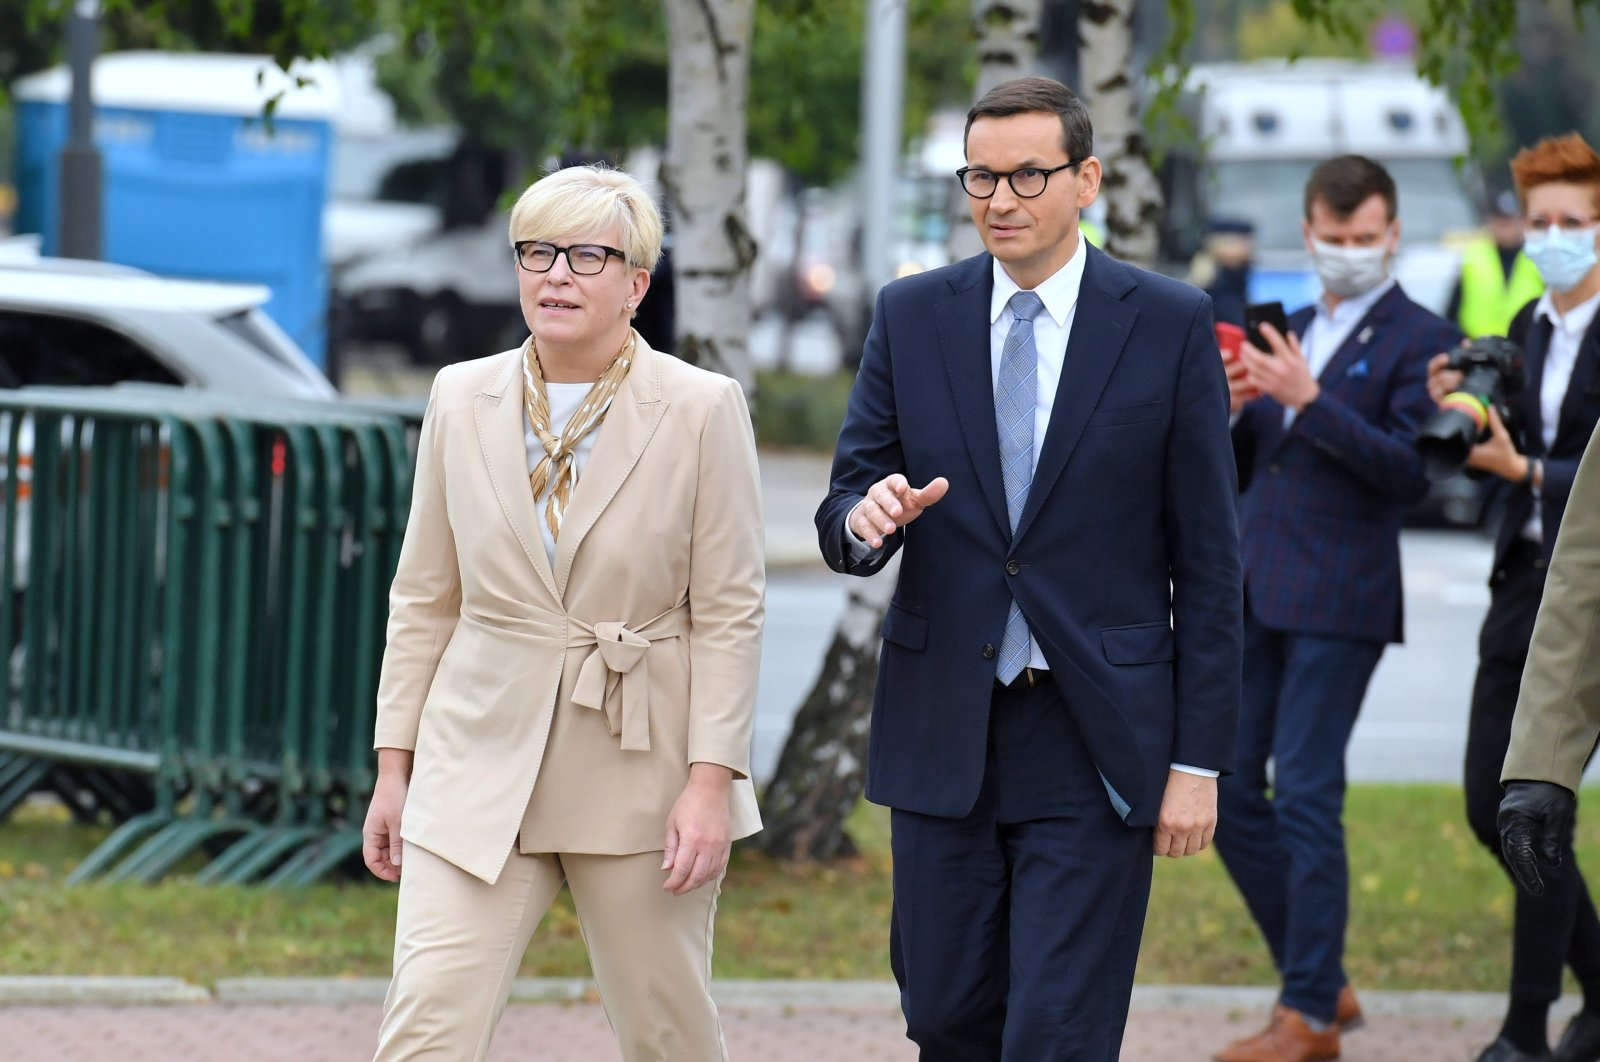 Poland's Prime Minister Mateusz Morawiecki (R) and Prime Minister of the Republic of Lithuania Ingrida Simonyte (L) walk in front of the Monument to the Fallen and Murdered in the East, in Warsaw, Poland, Sept. 17, 2021. (EPA Photo)